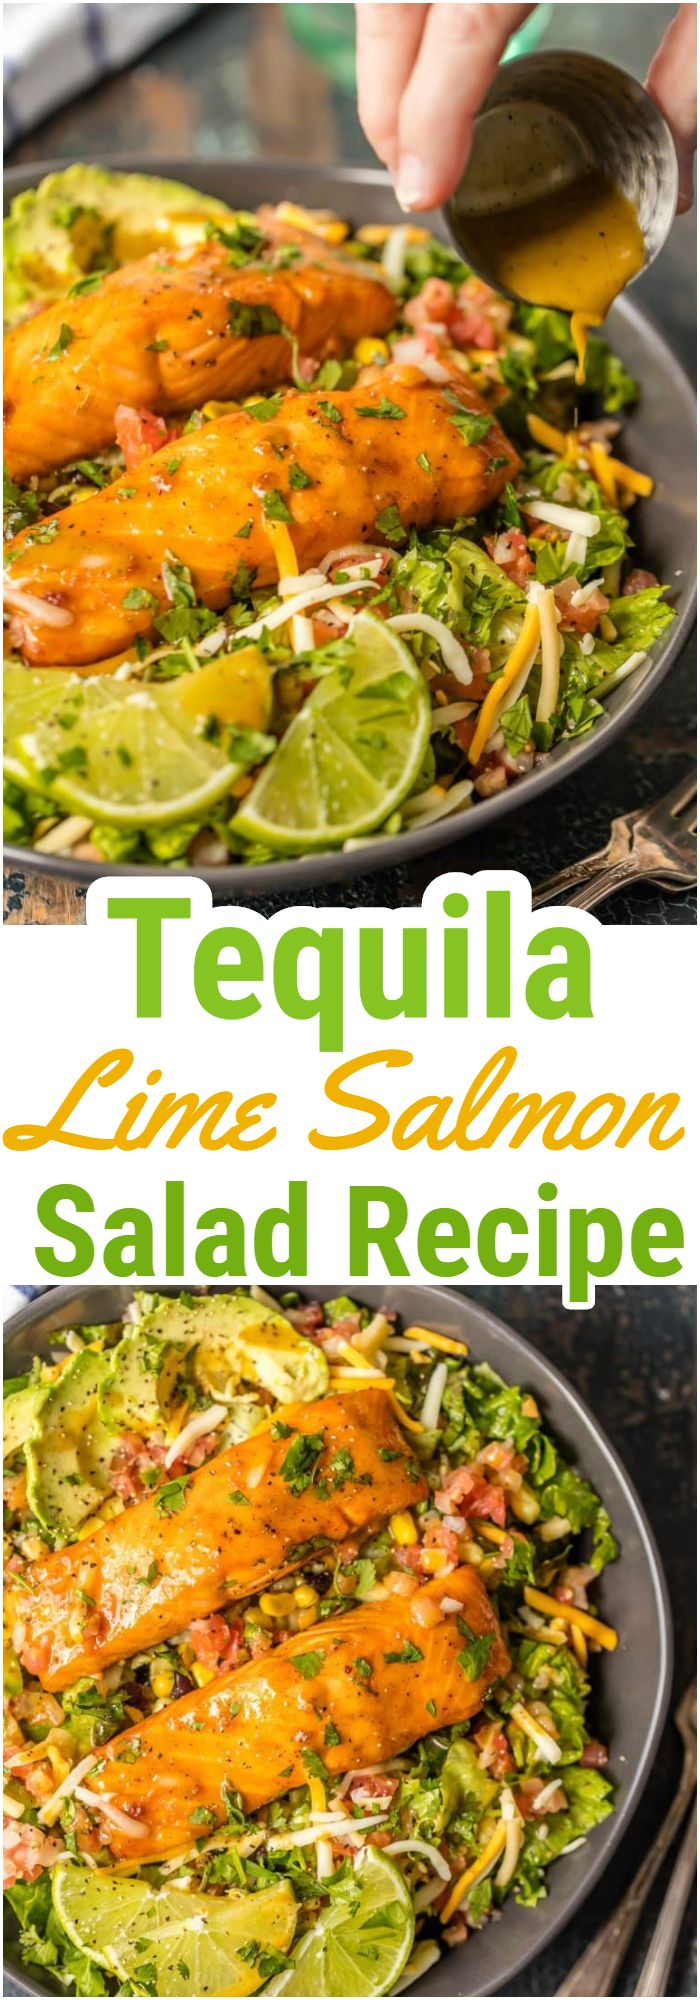 Tequila Lime Salmon Salad Recipe